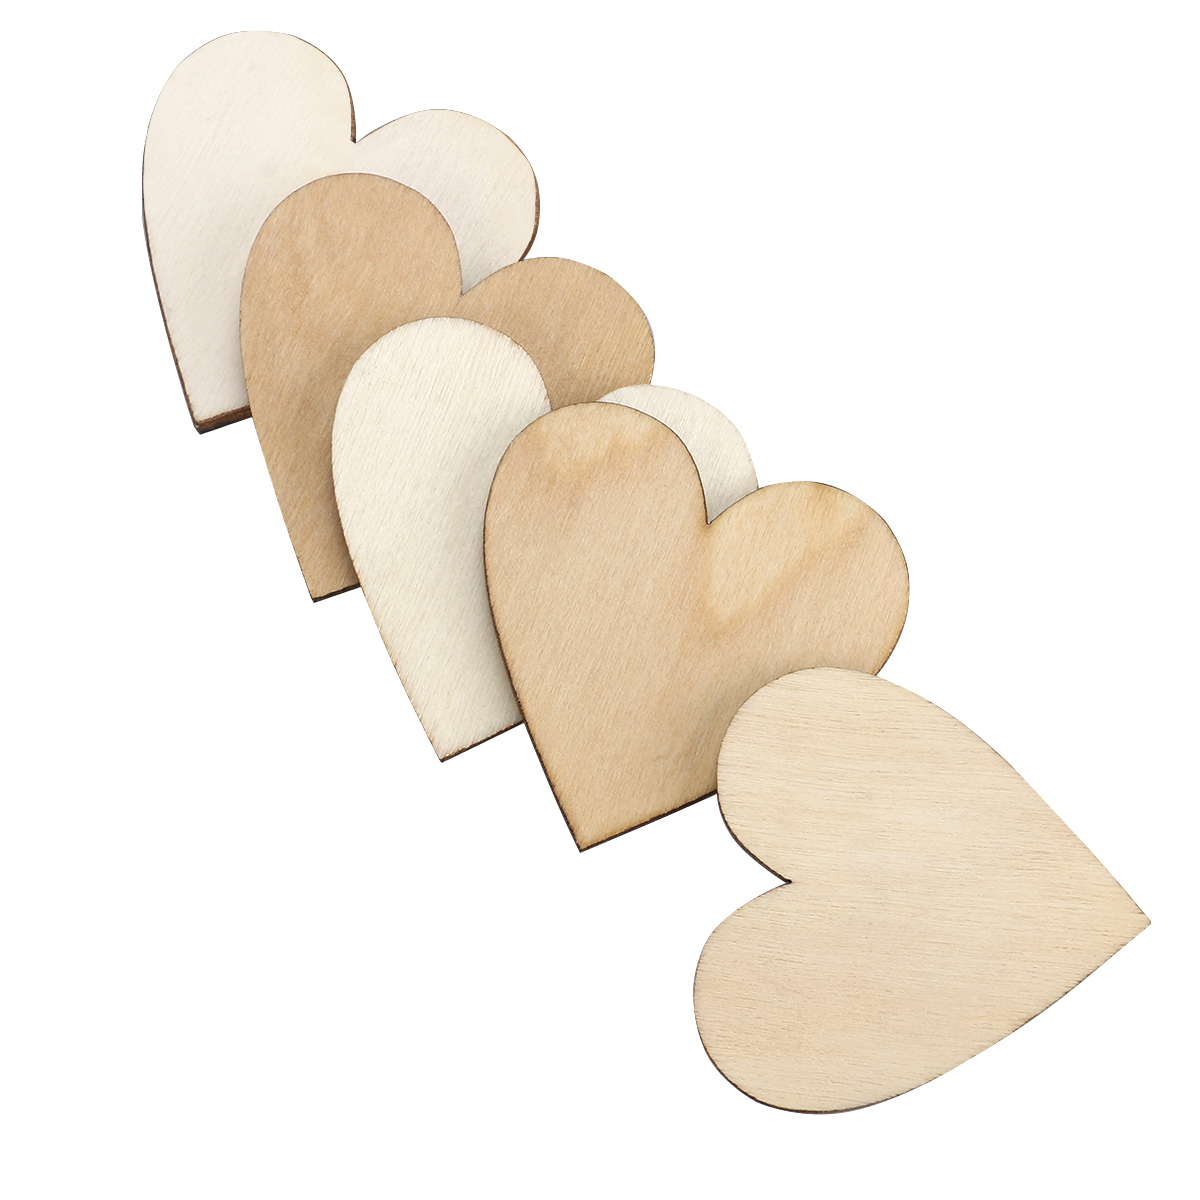 50pcs Plain Unfinished Wooden Heart Shape Tags Embellishments DIY Decoration